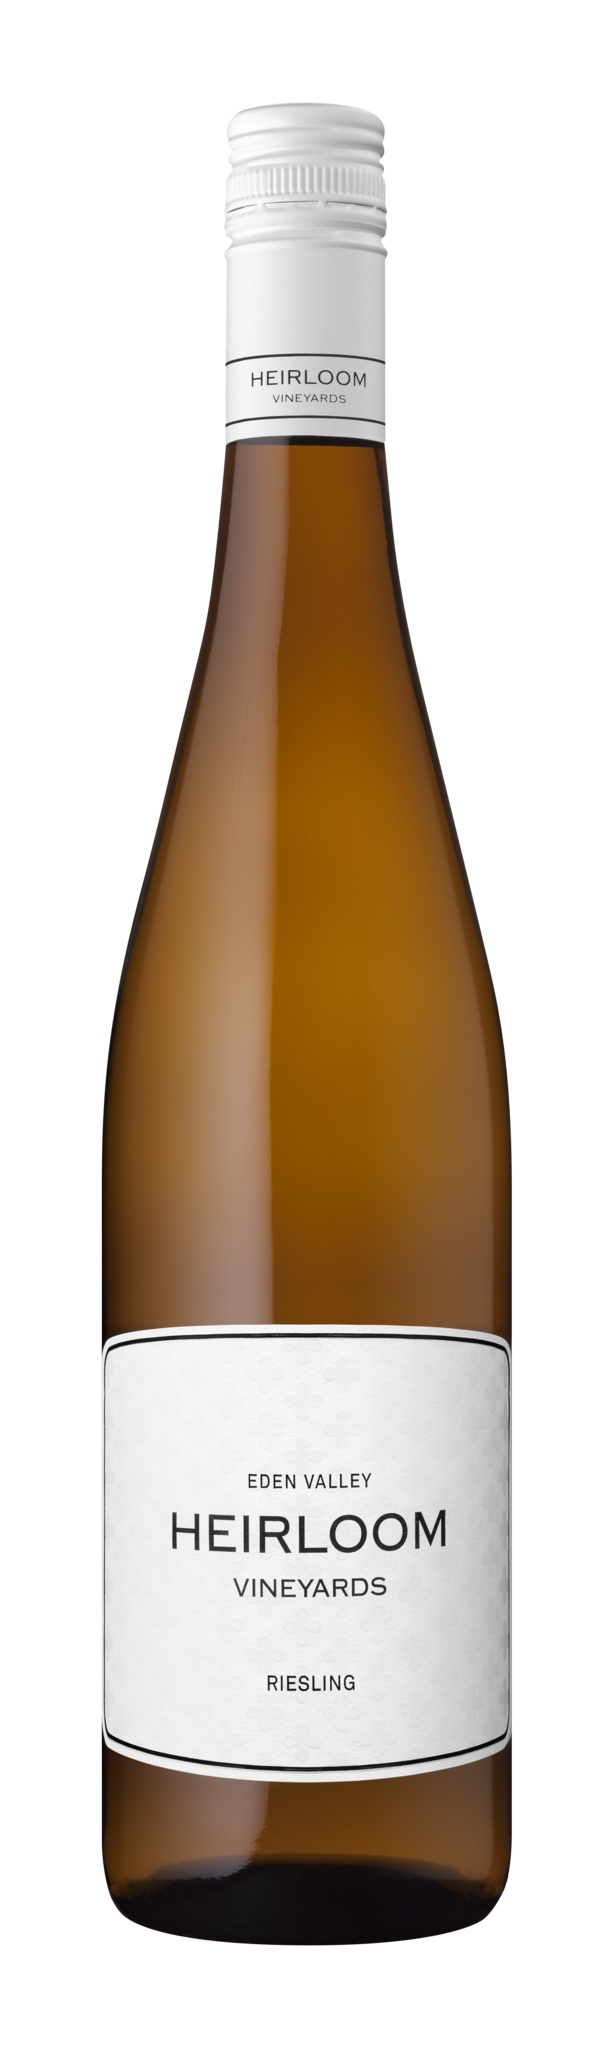 Eden Valley Riesling 2015